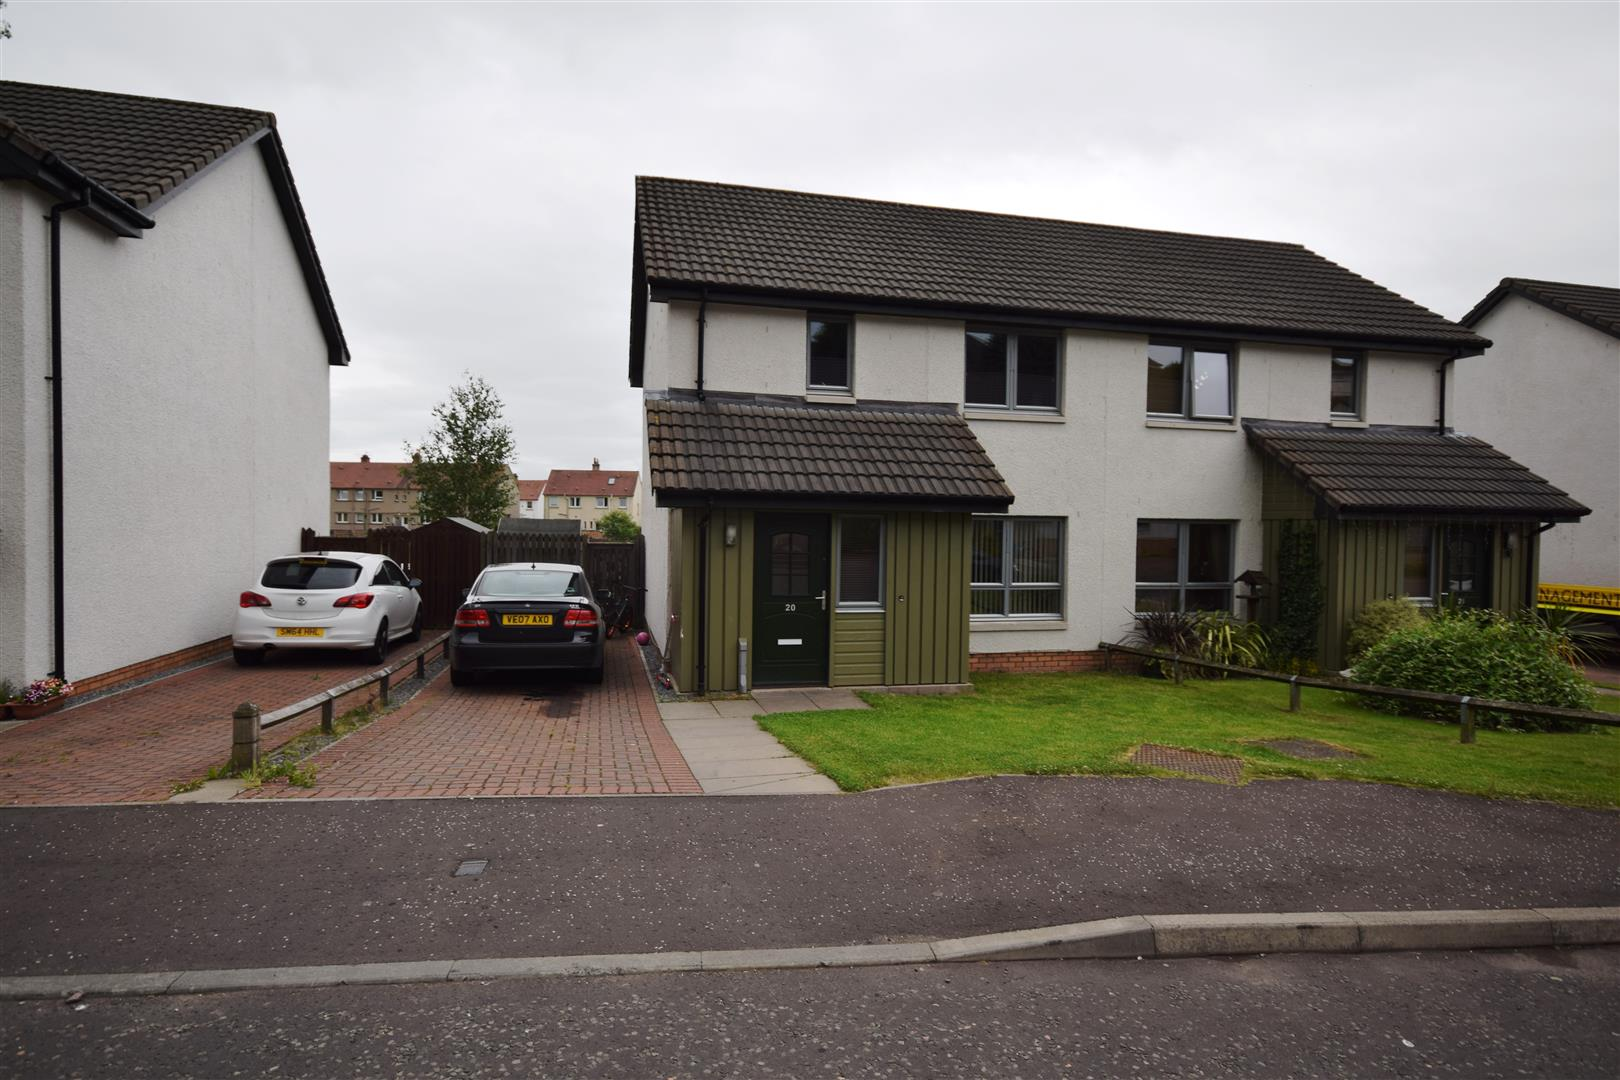 20, Beattie Gardens, Crieff, Perthshire, PH7 3FD, UK